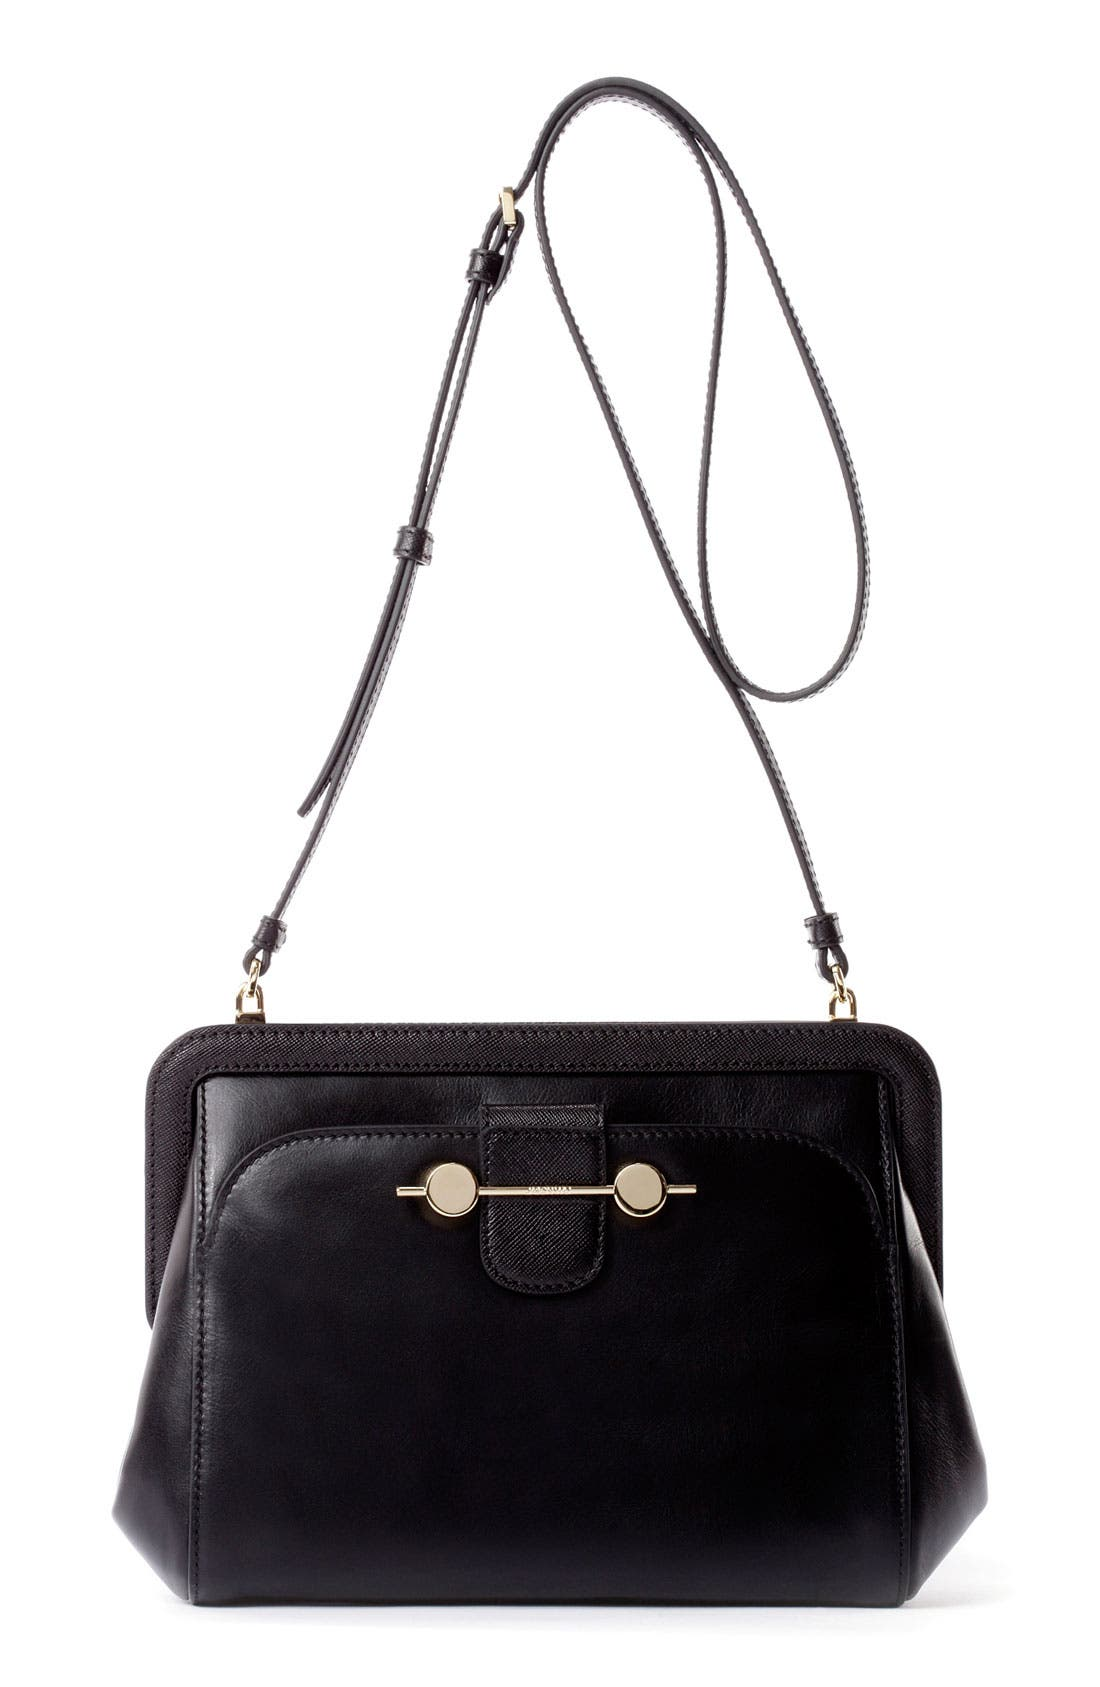 Main Image - Jason Wu 'Daphne' Leather Crossbody Bag